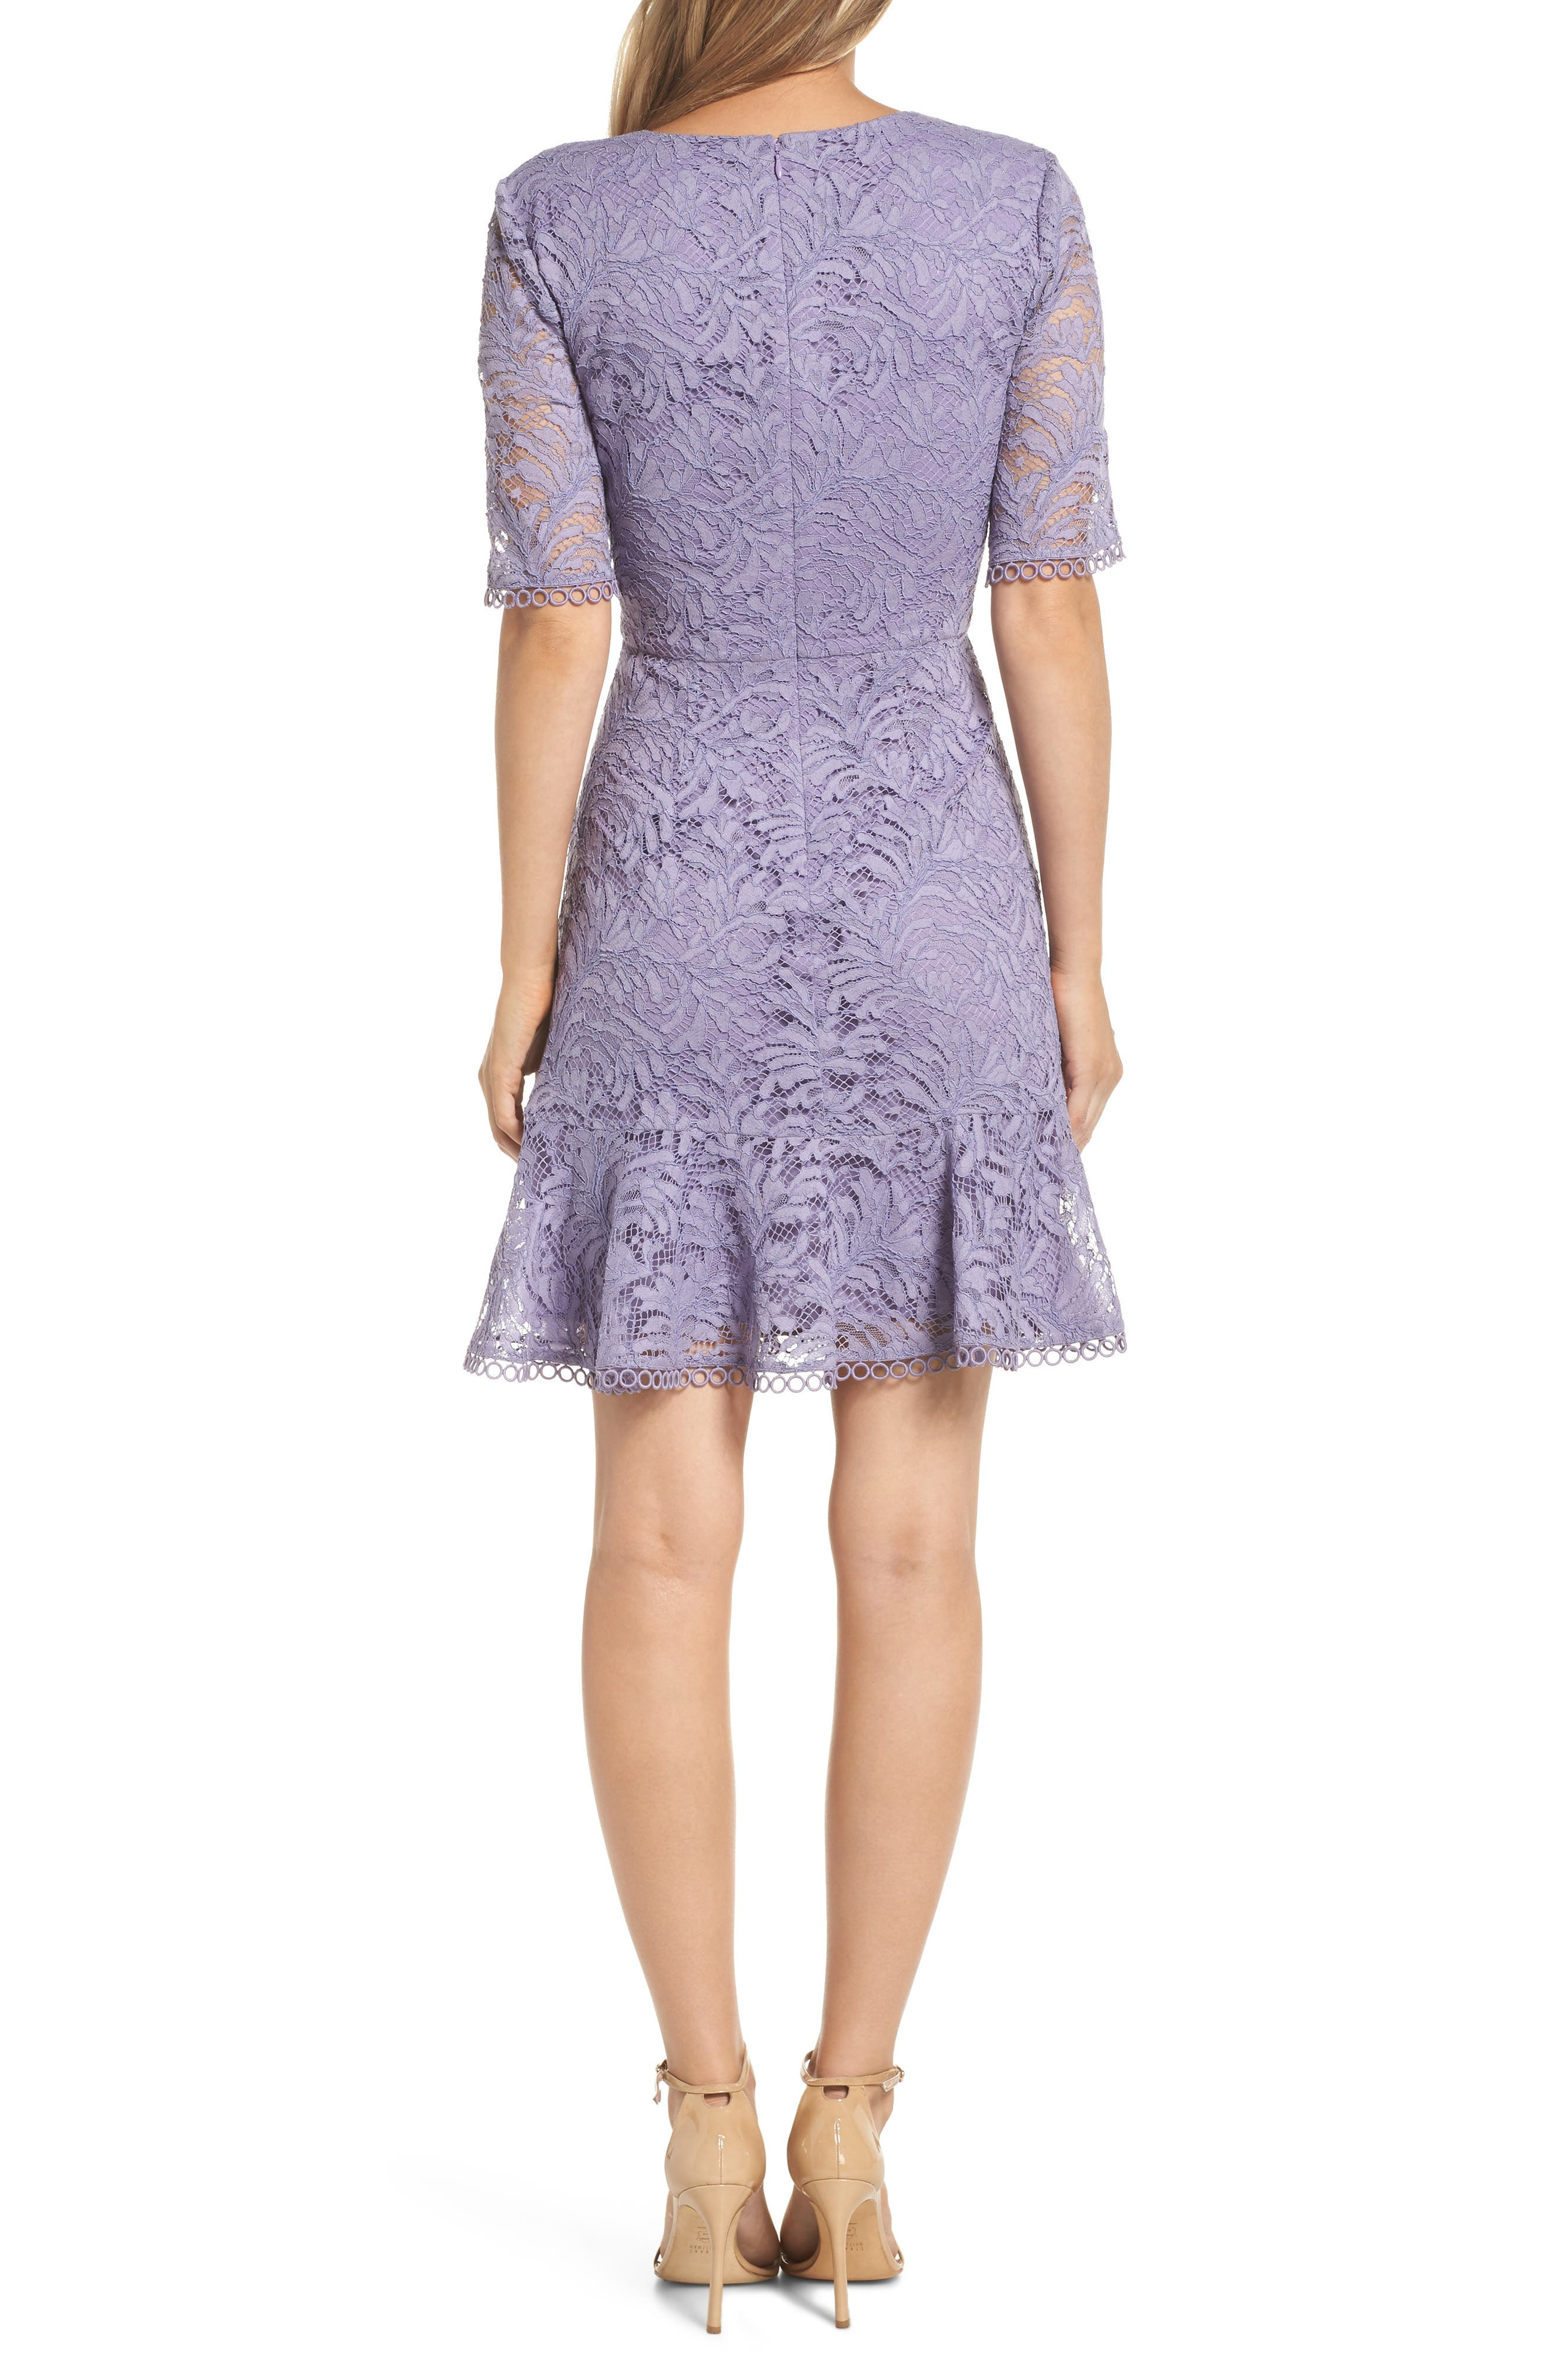 VINCE CAMUTO, Asymmetrical Ruffle Lace Fit & Flare Dress, Alternate thumbnail 2, color, 524